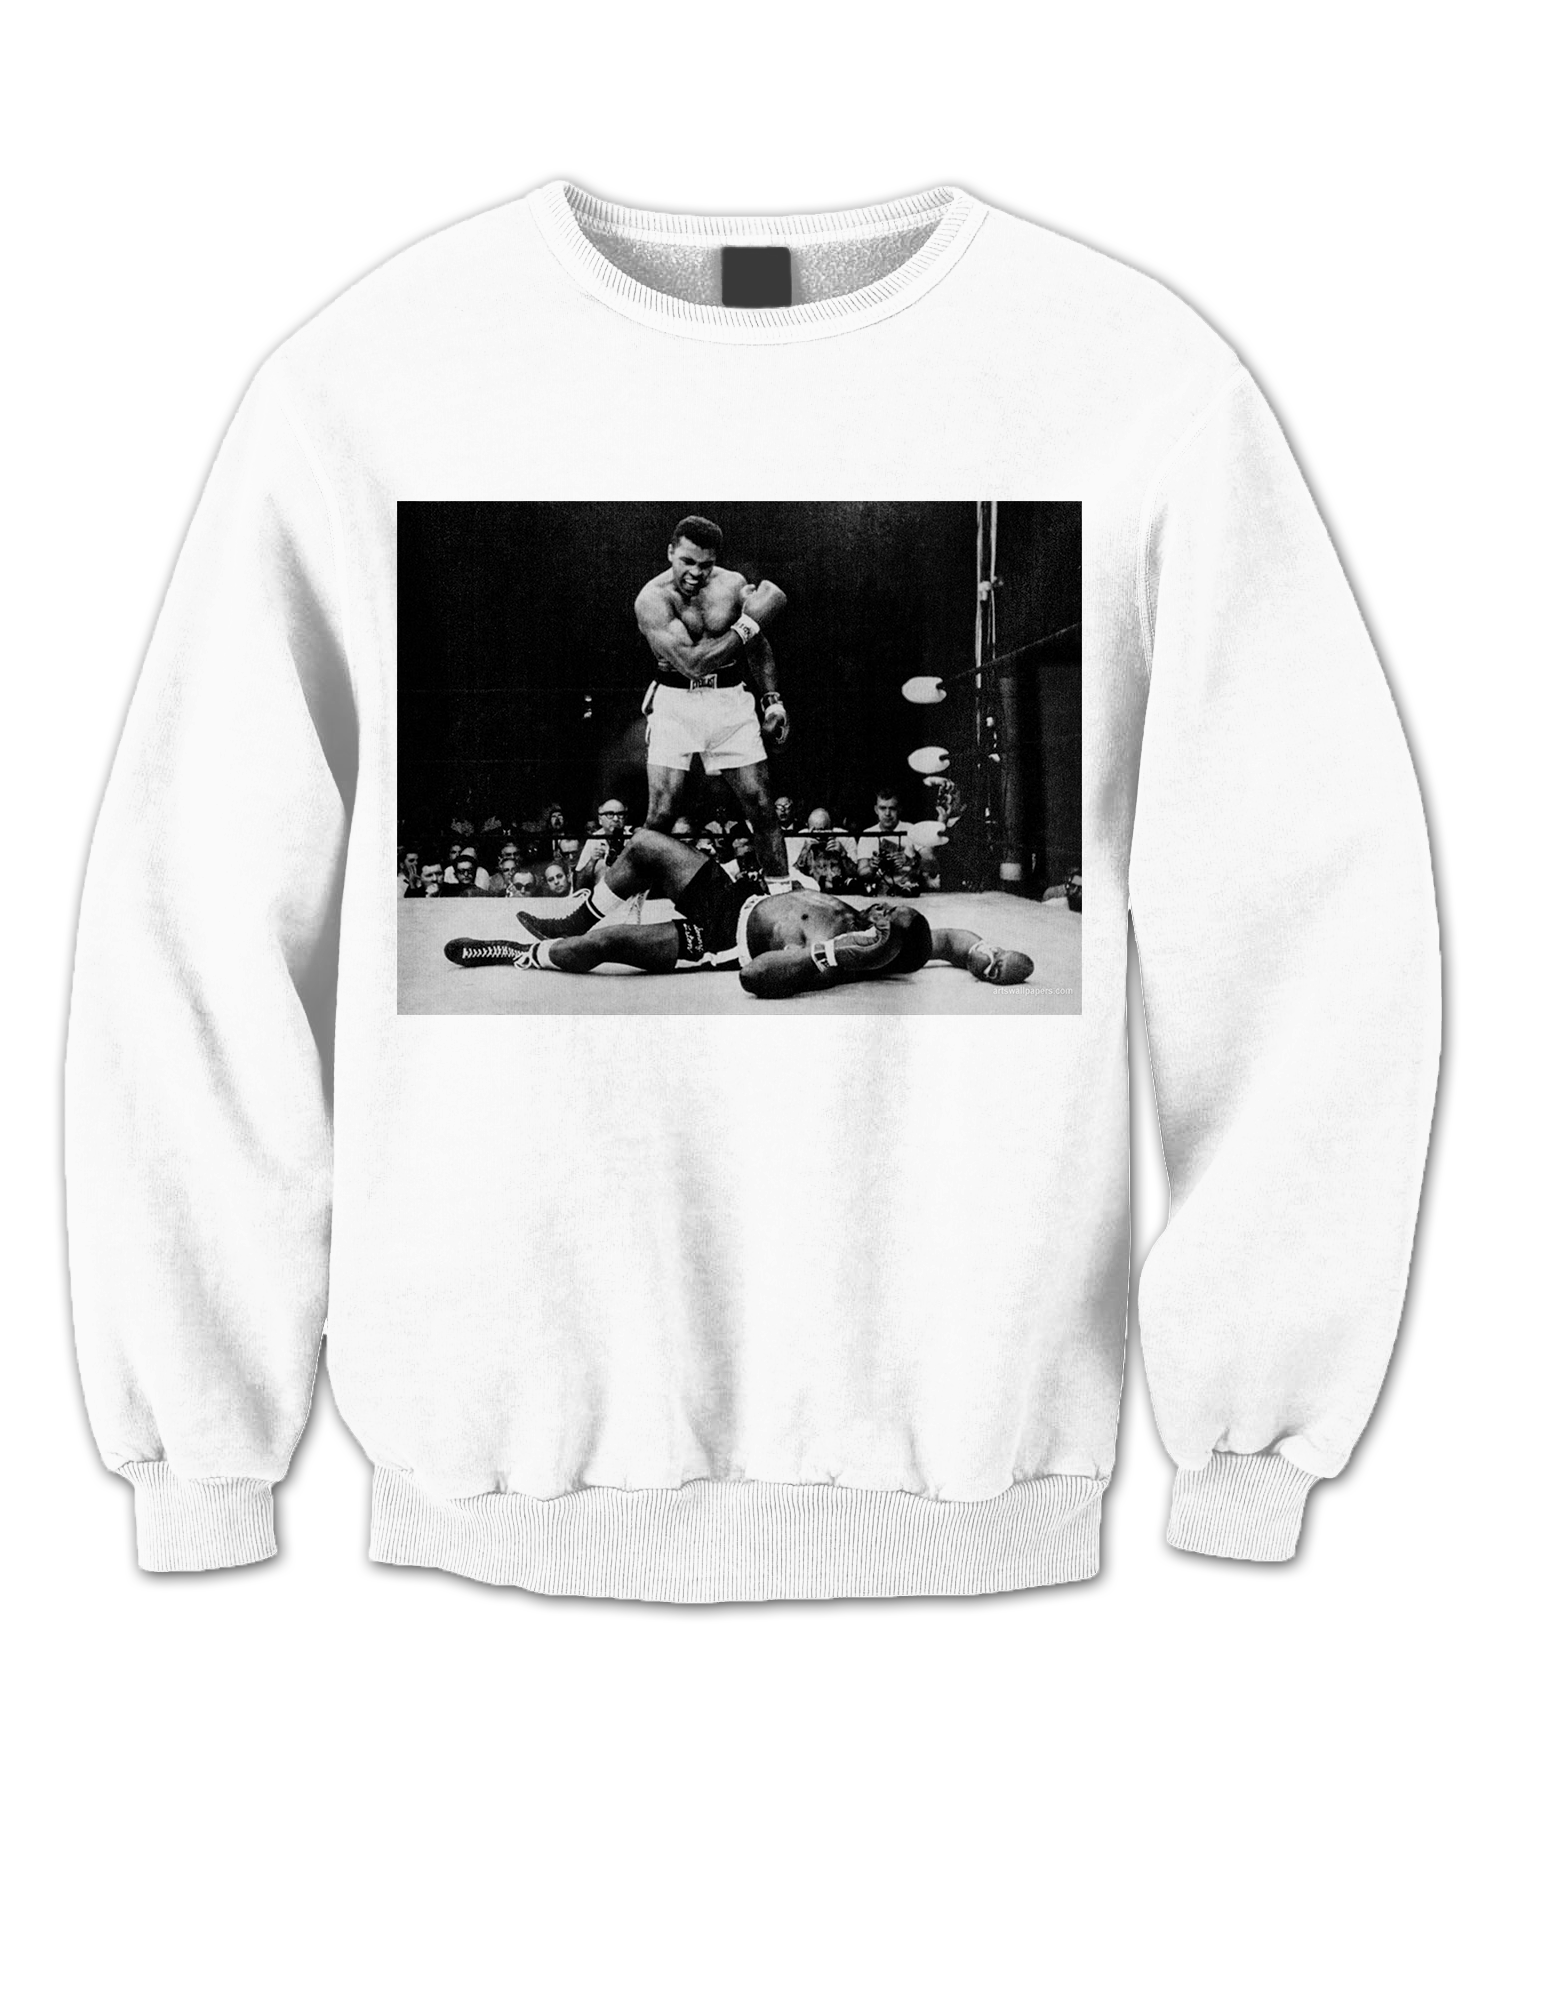 ali sweatshirt ali vs liston shirt muhammad ali knock out. Black Bedroom Furniture Sets. Home Design Ideas